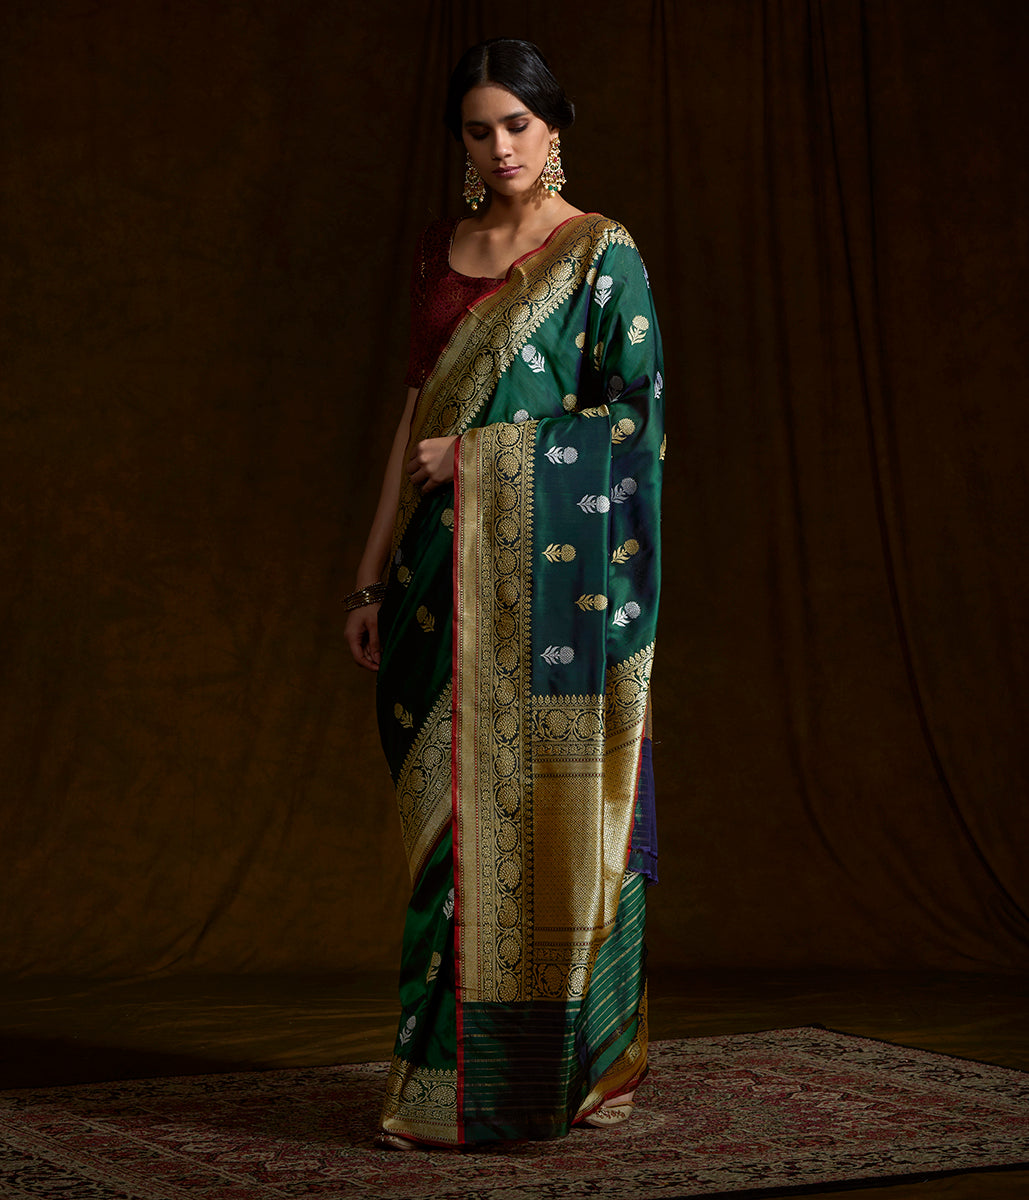 Emerald Green katan silk saree with floral motifs and a delicate kadhwa border with red selvedge